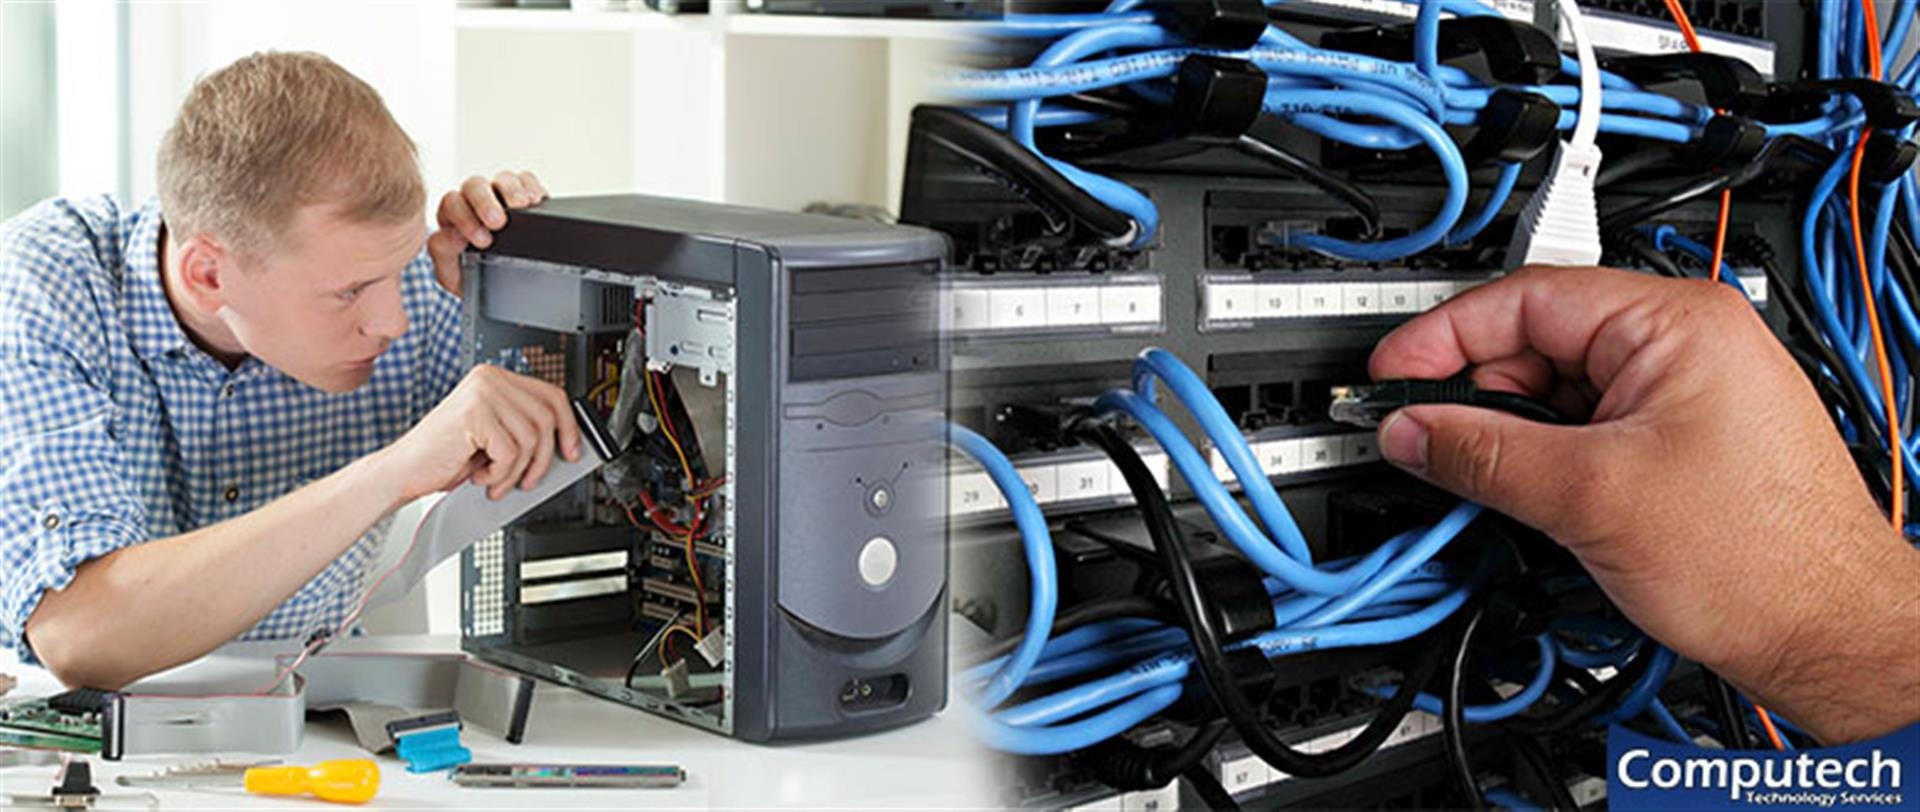 Kearny Arizona Onsite Computer PC & Printer Repairs, Network, Voice and High Speed Data Cabling Services